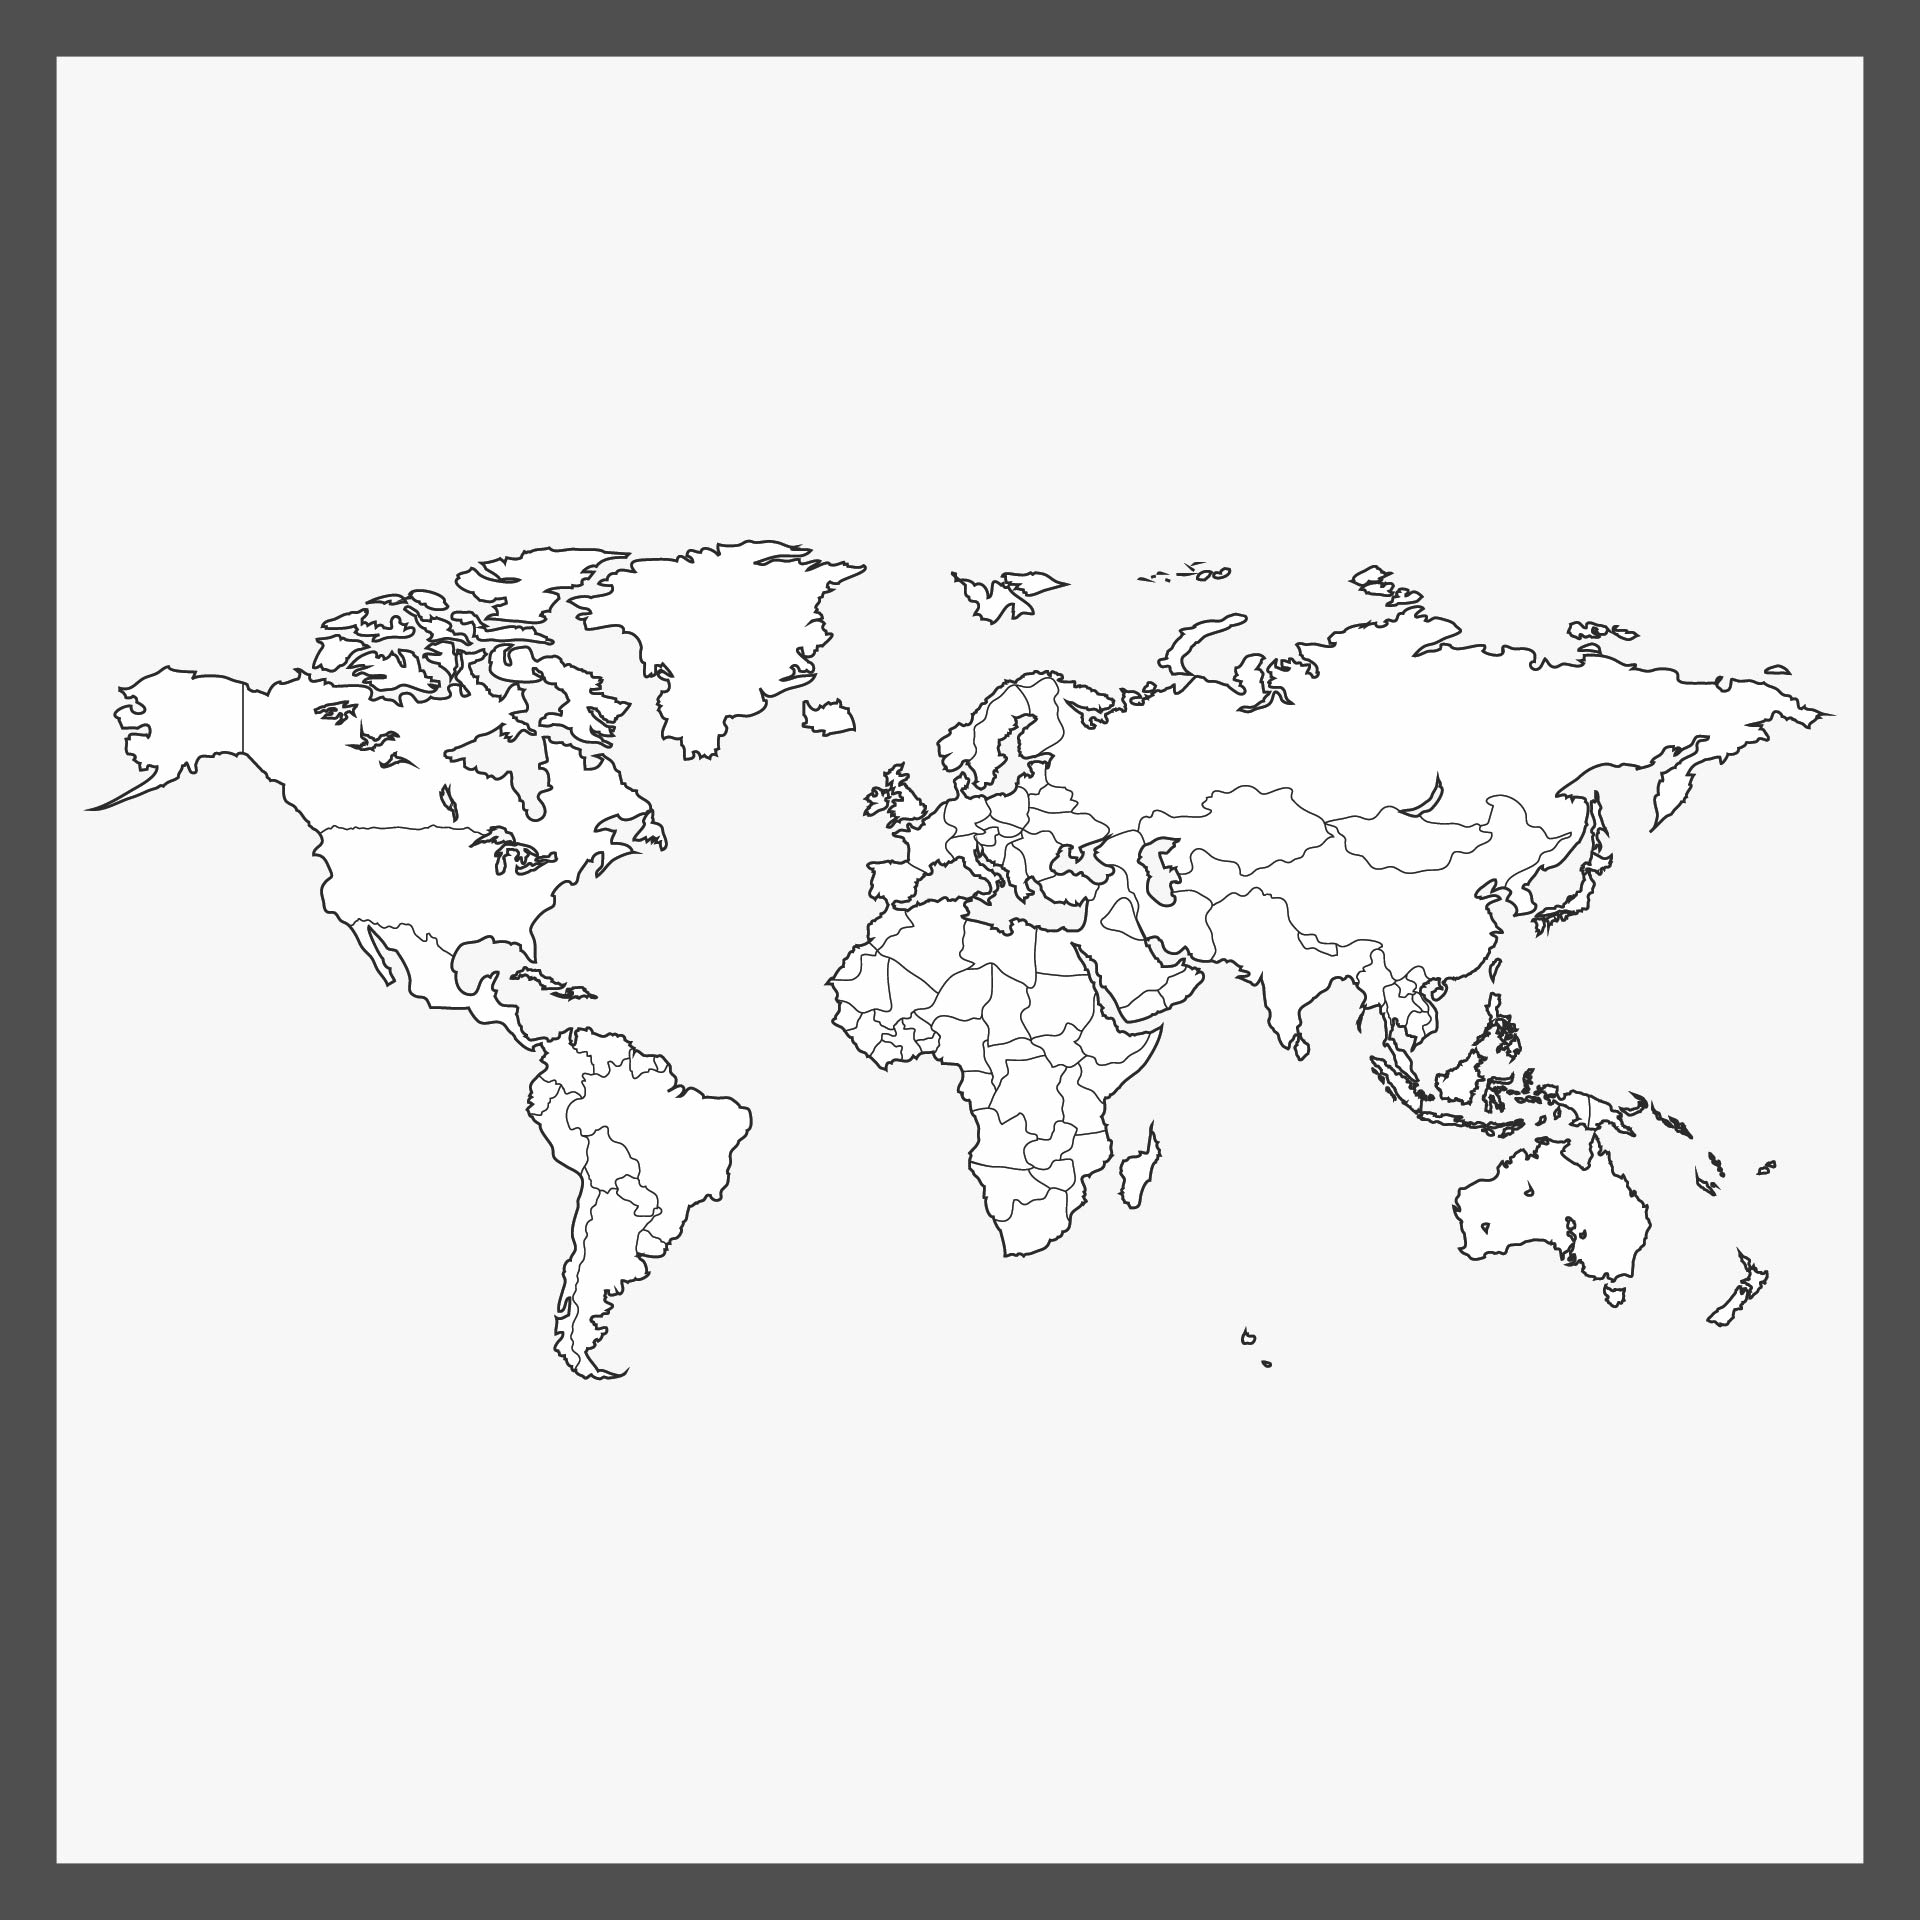 Blank World Map Black and White